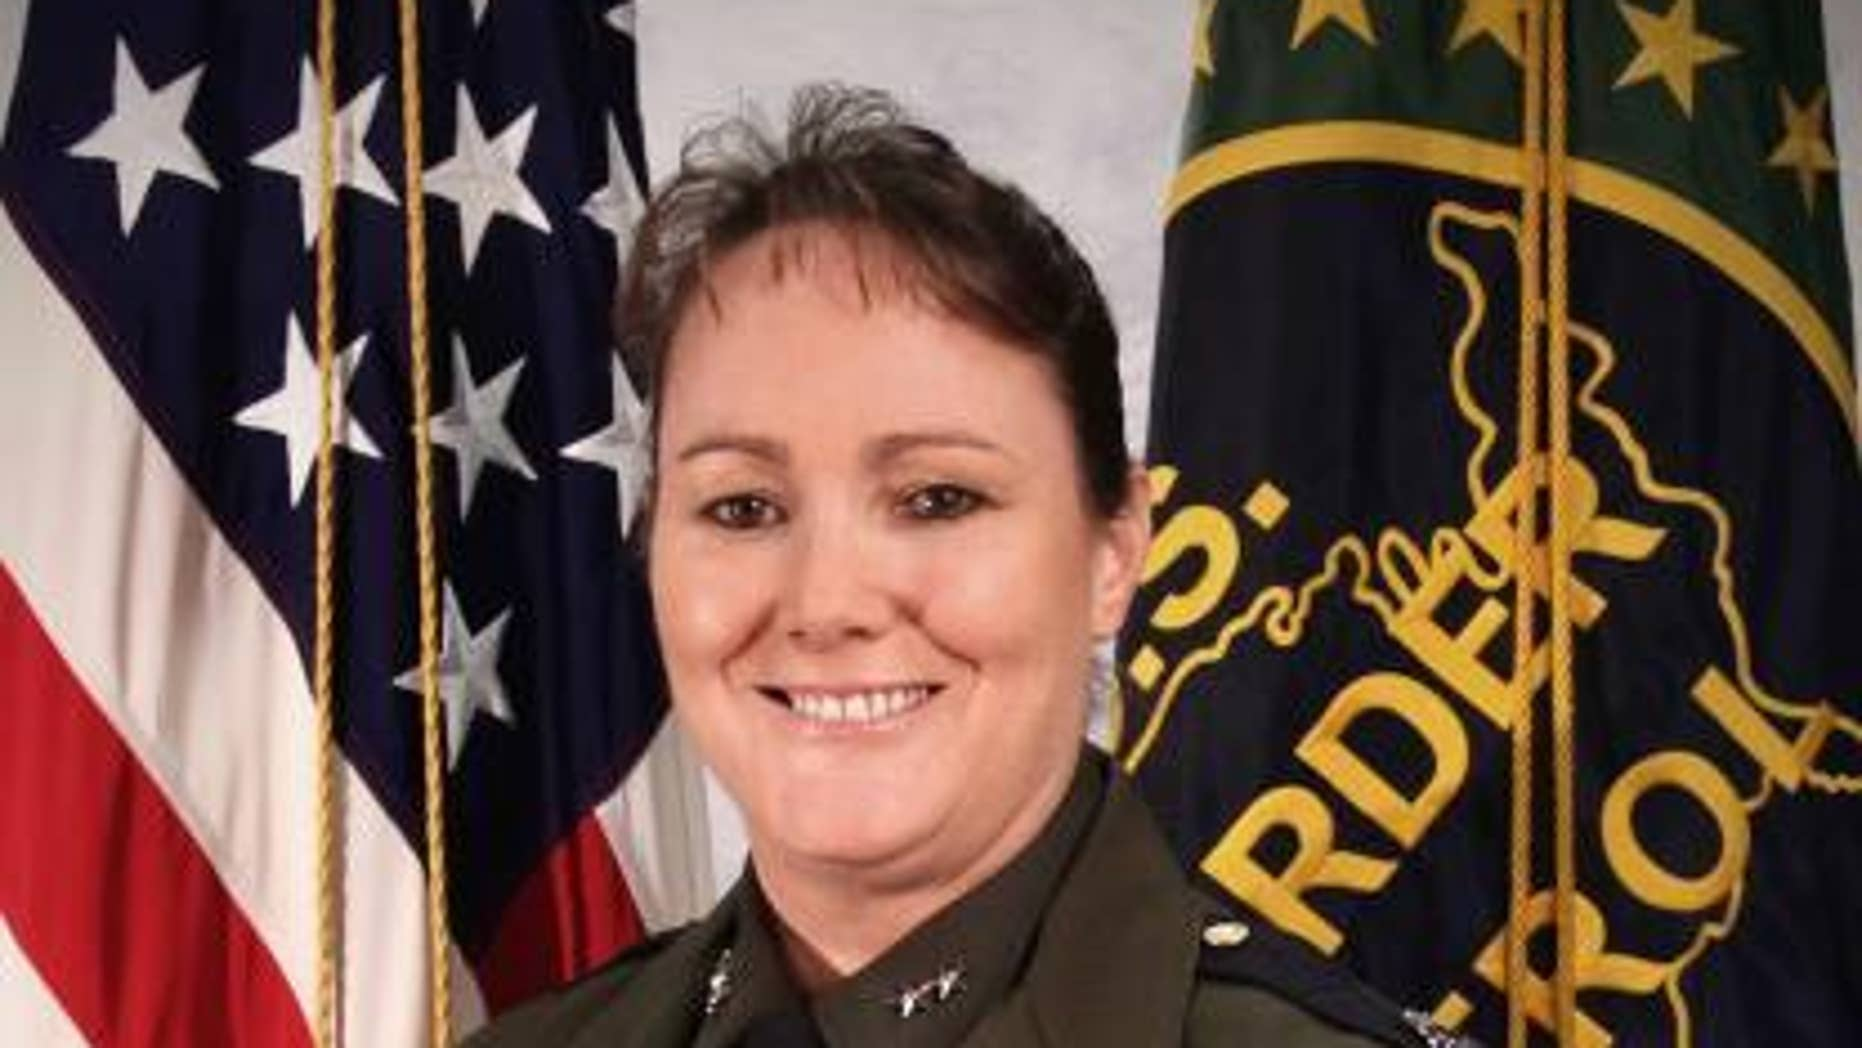 Border Patrol Chief Carla Provost has been with the agency for nearly 23 years.